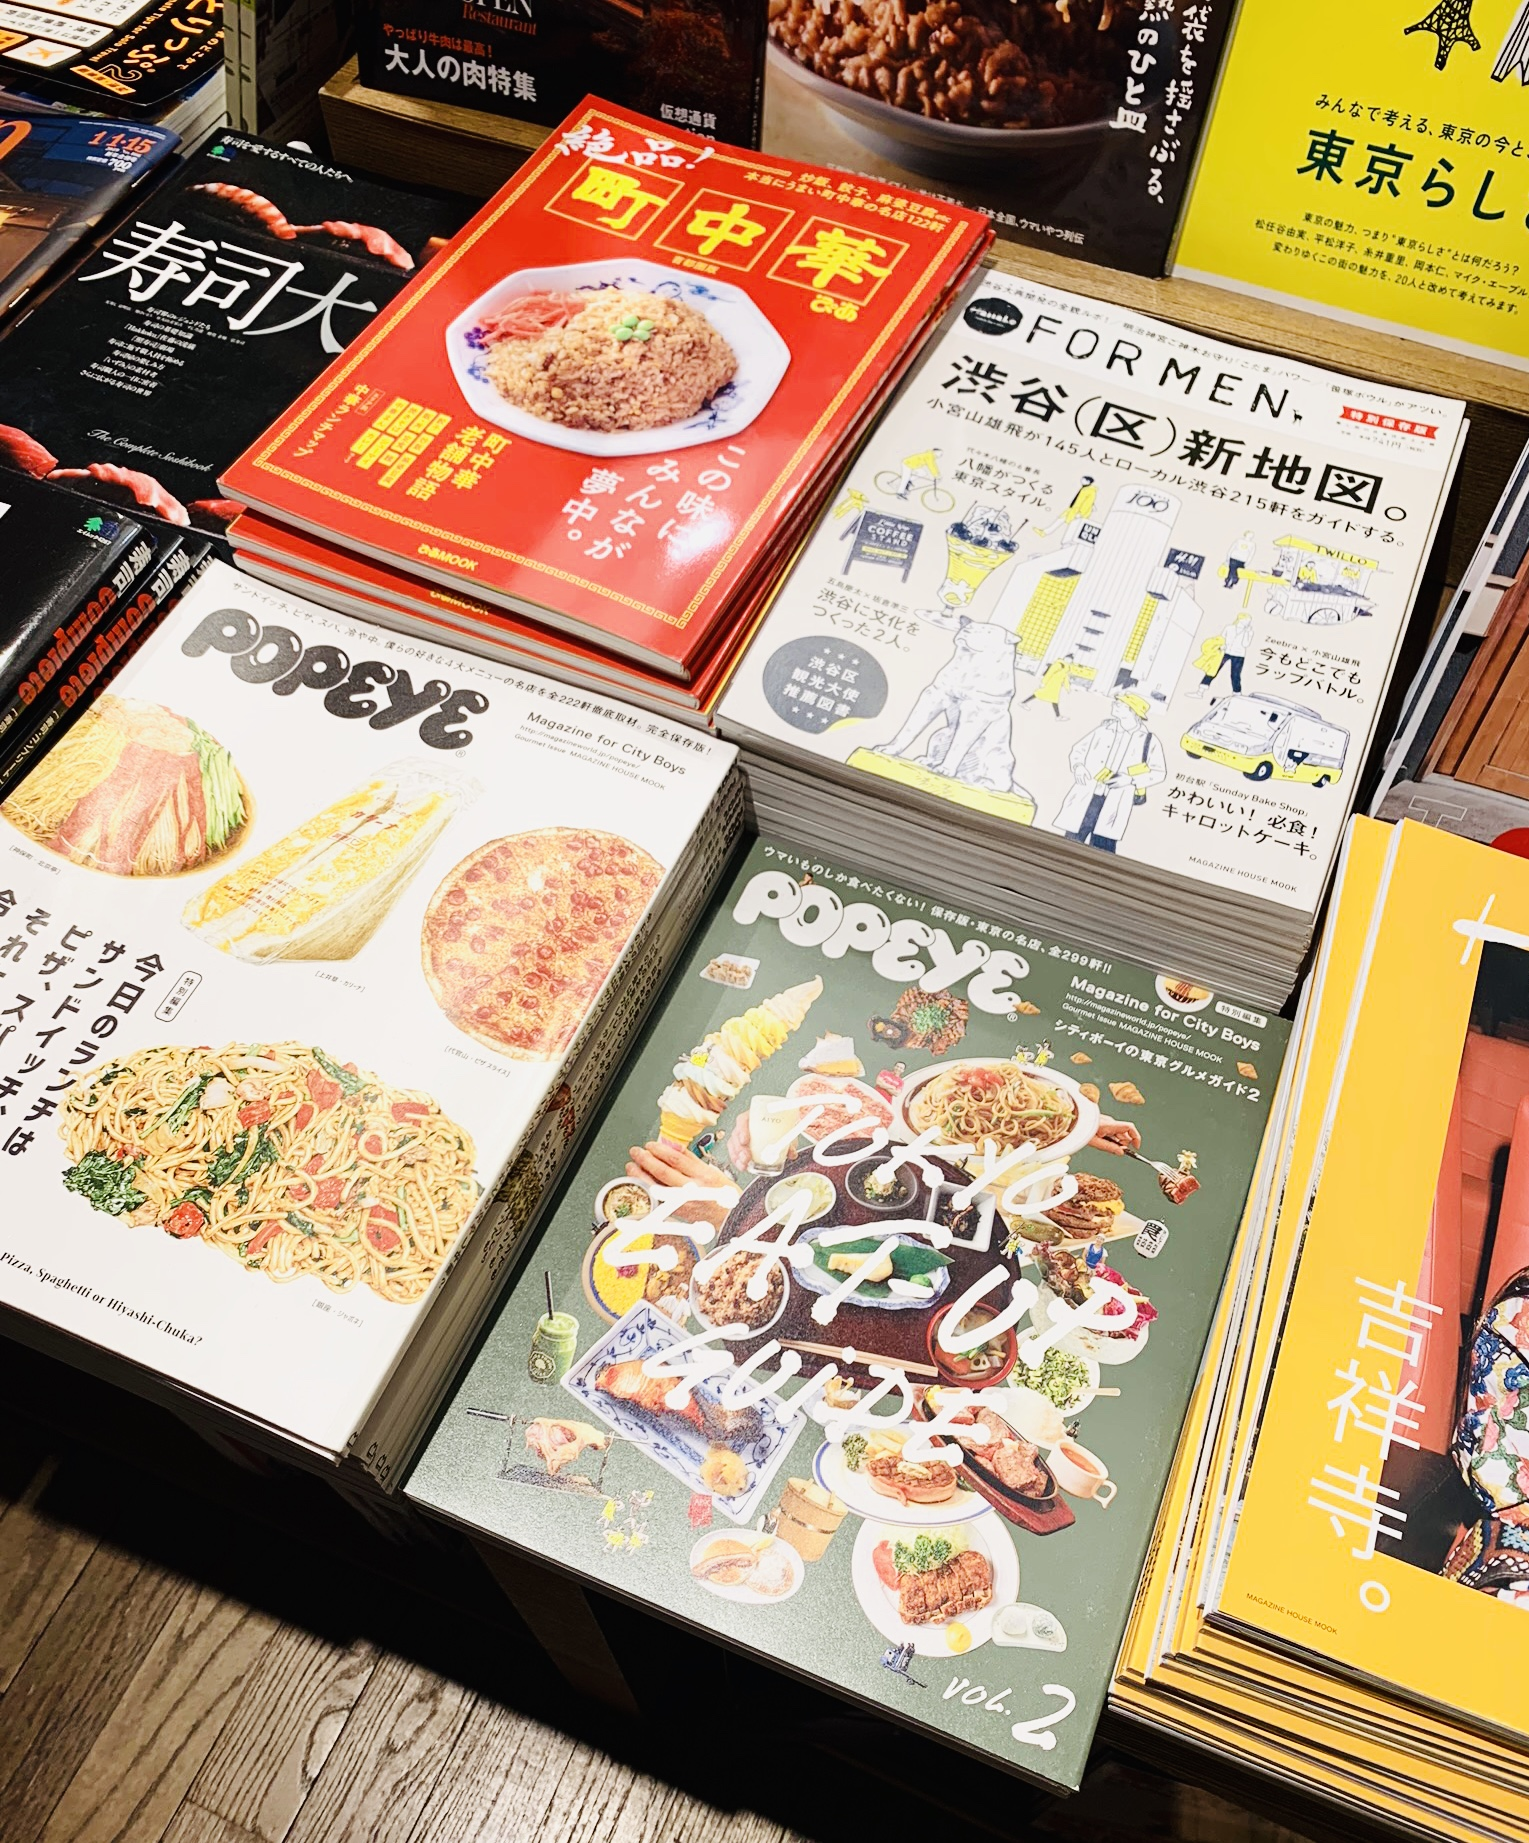 food books 2.JPEG